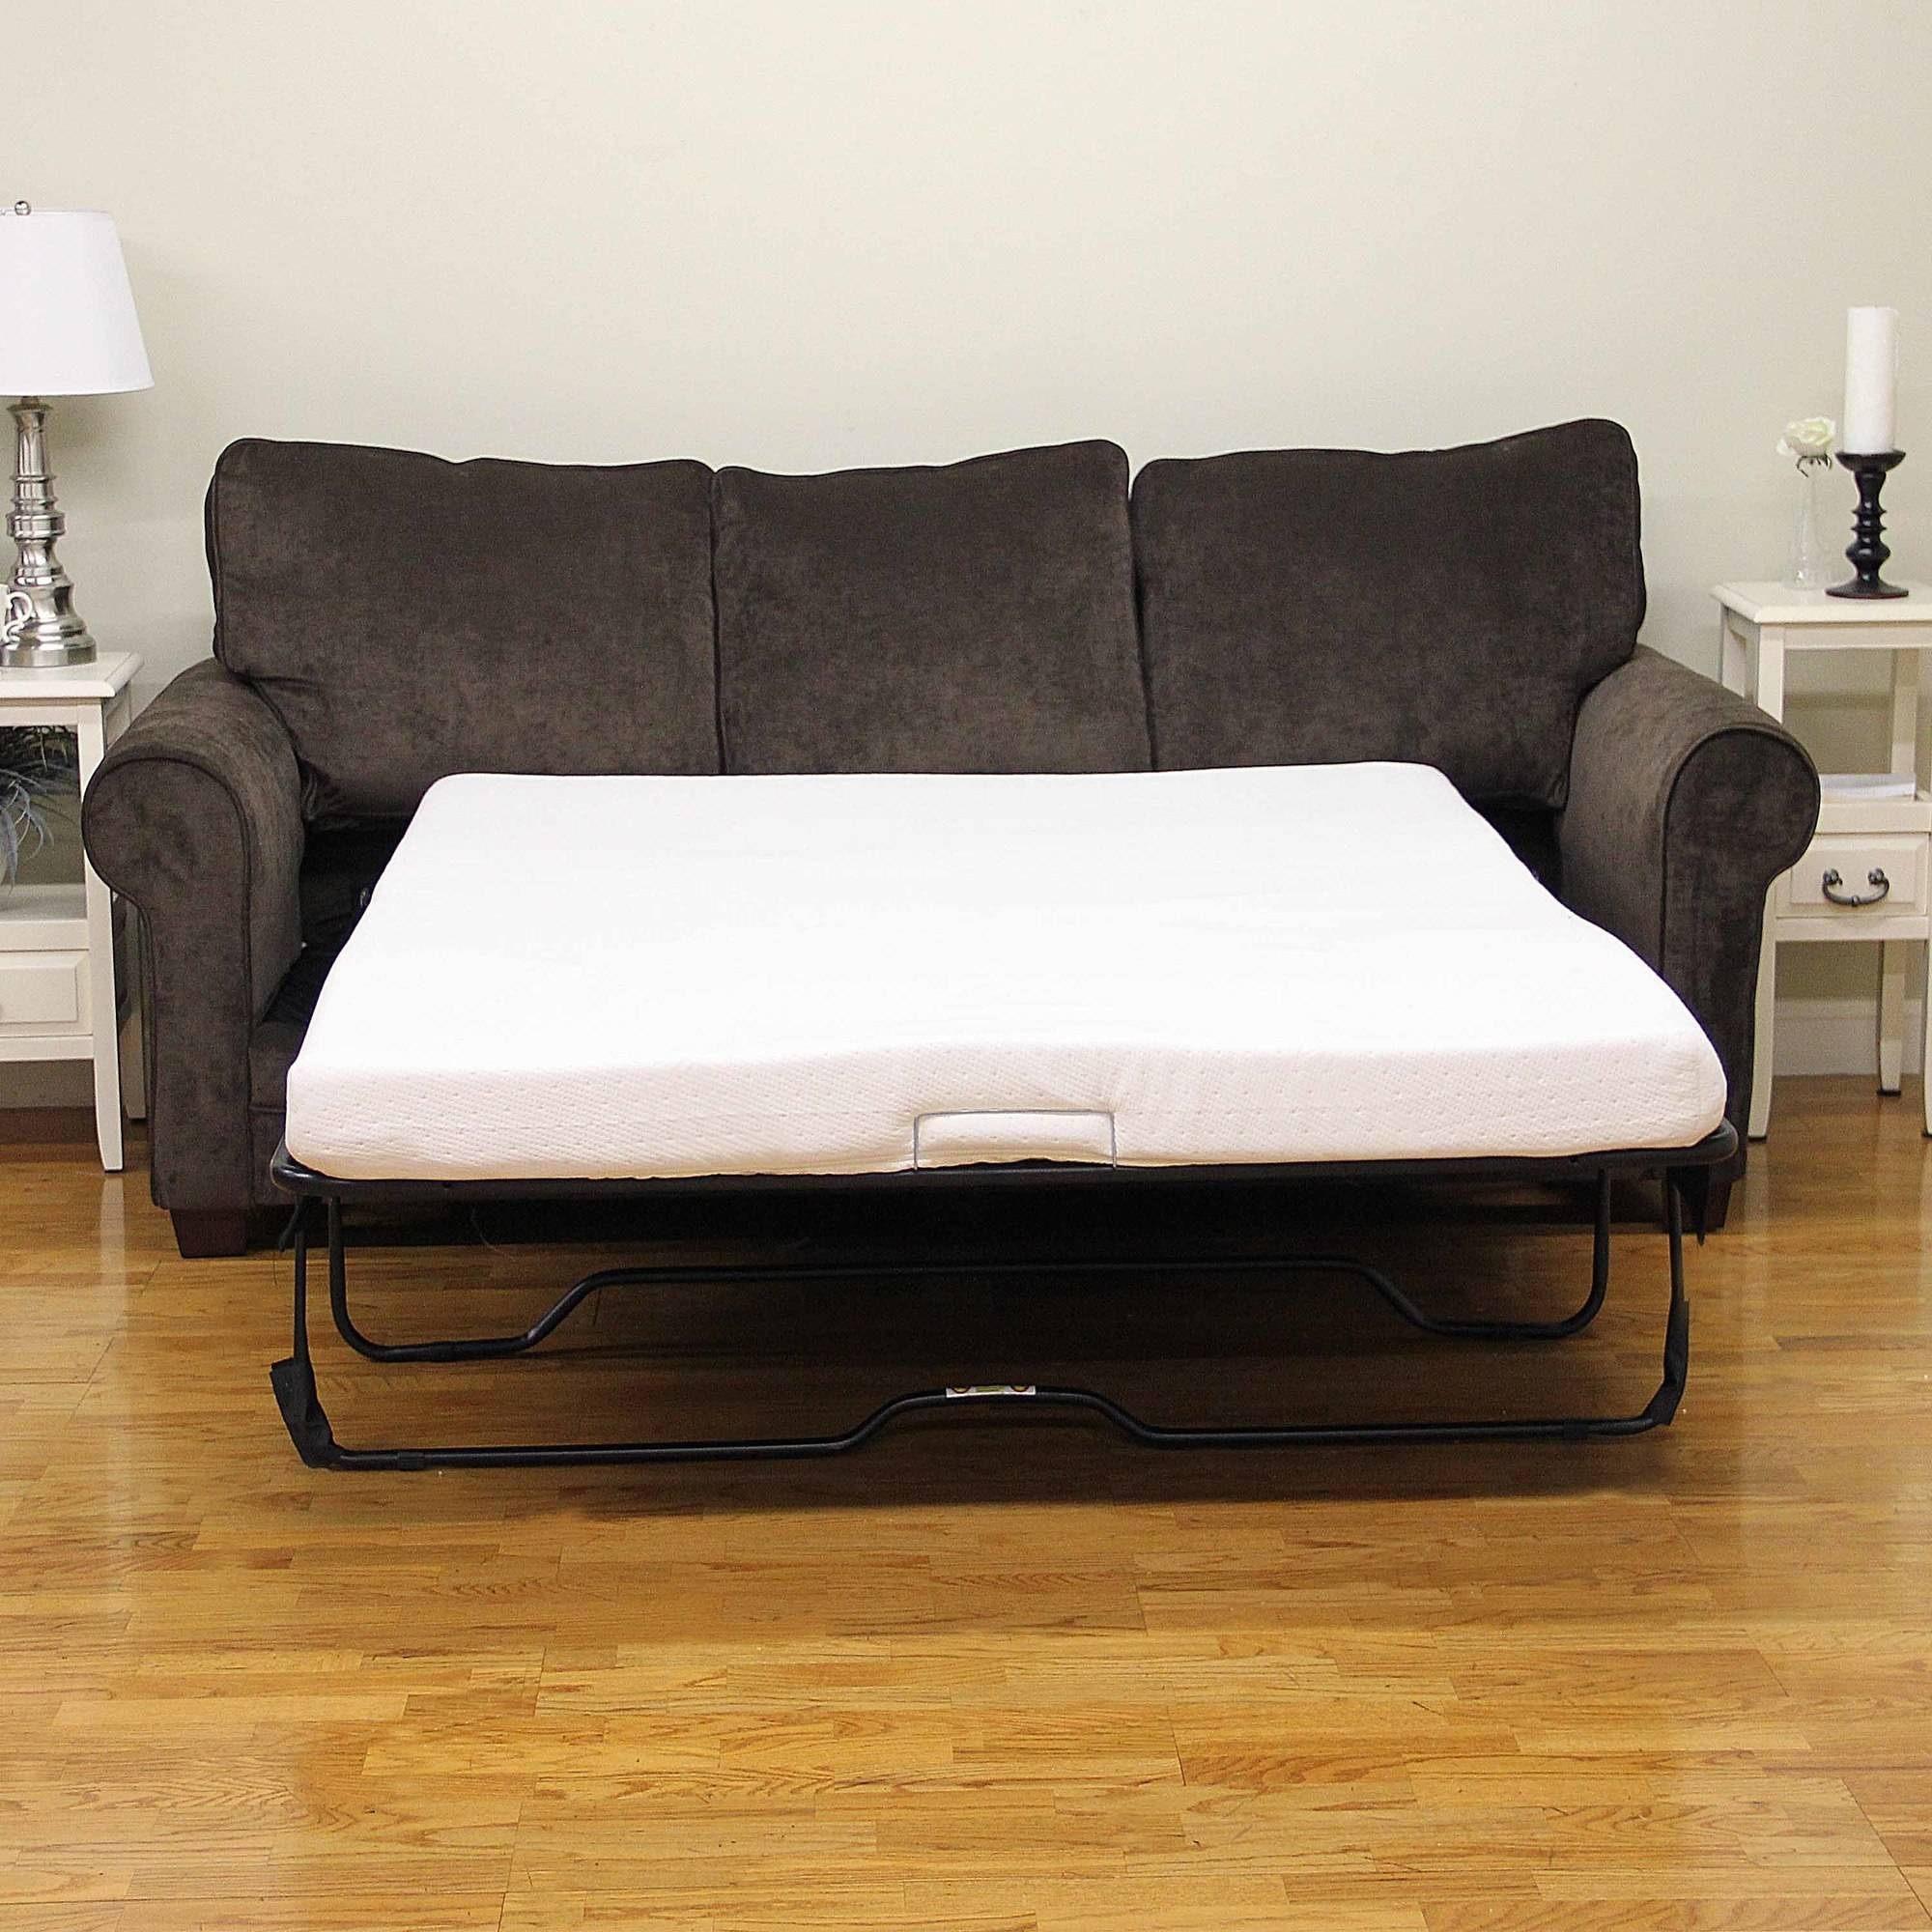 Popular Photo of Sofa Beds With Mattress Support